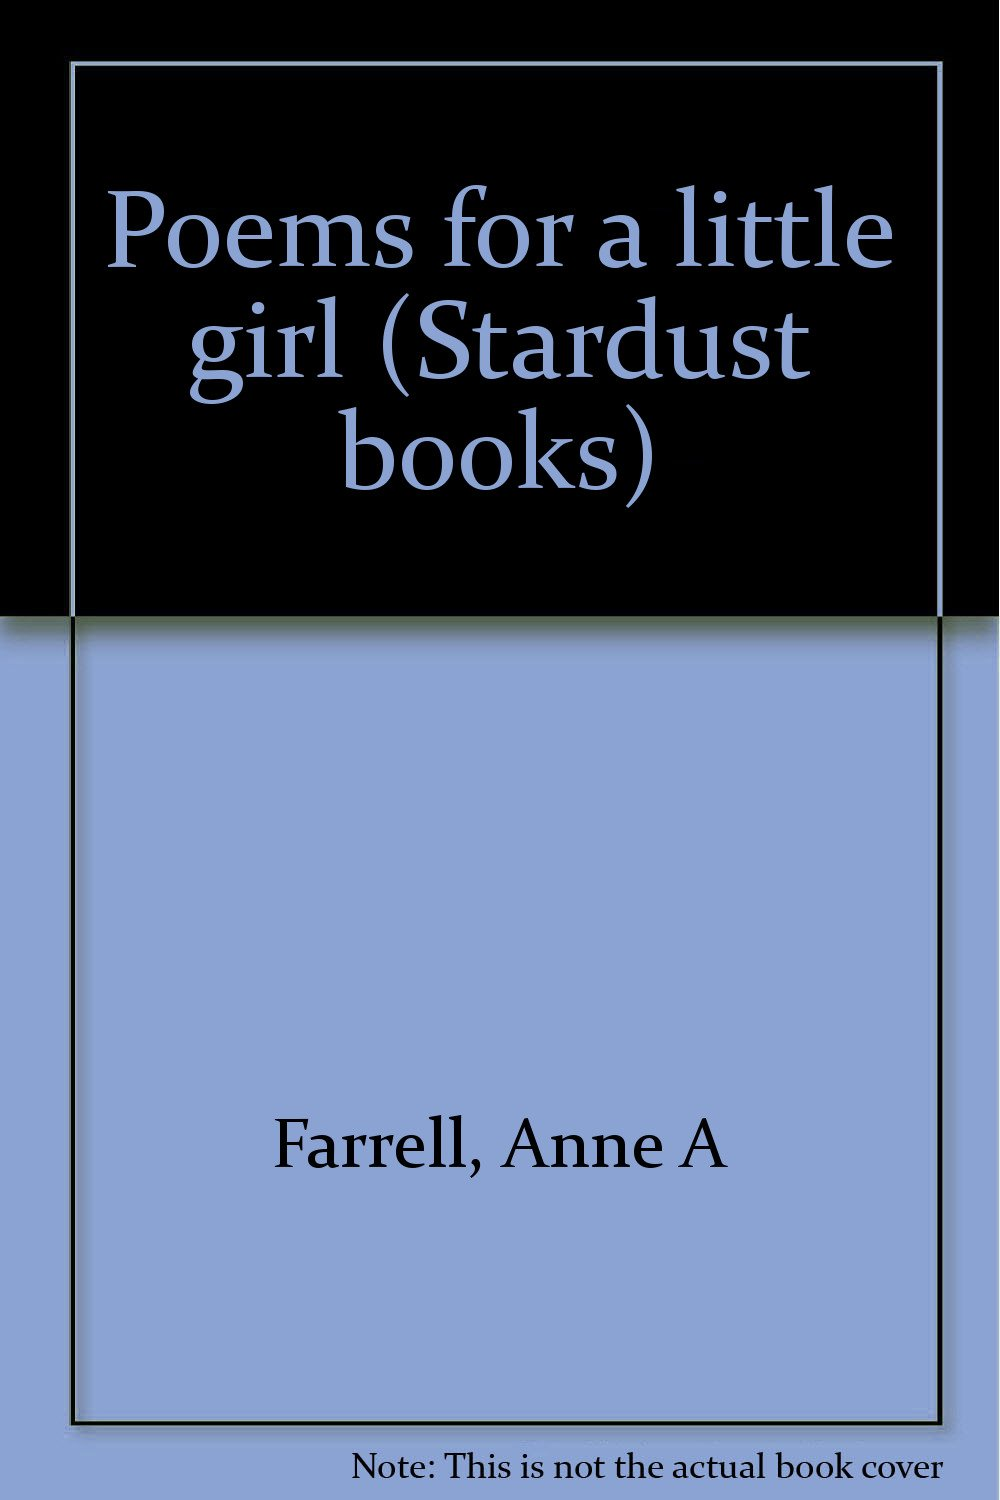 poems for a little girl stardust books anne a farrell 9780837819242 amazoncom books